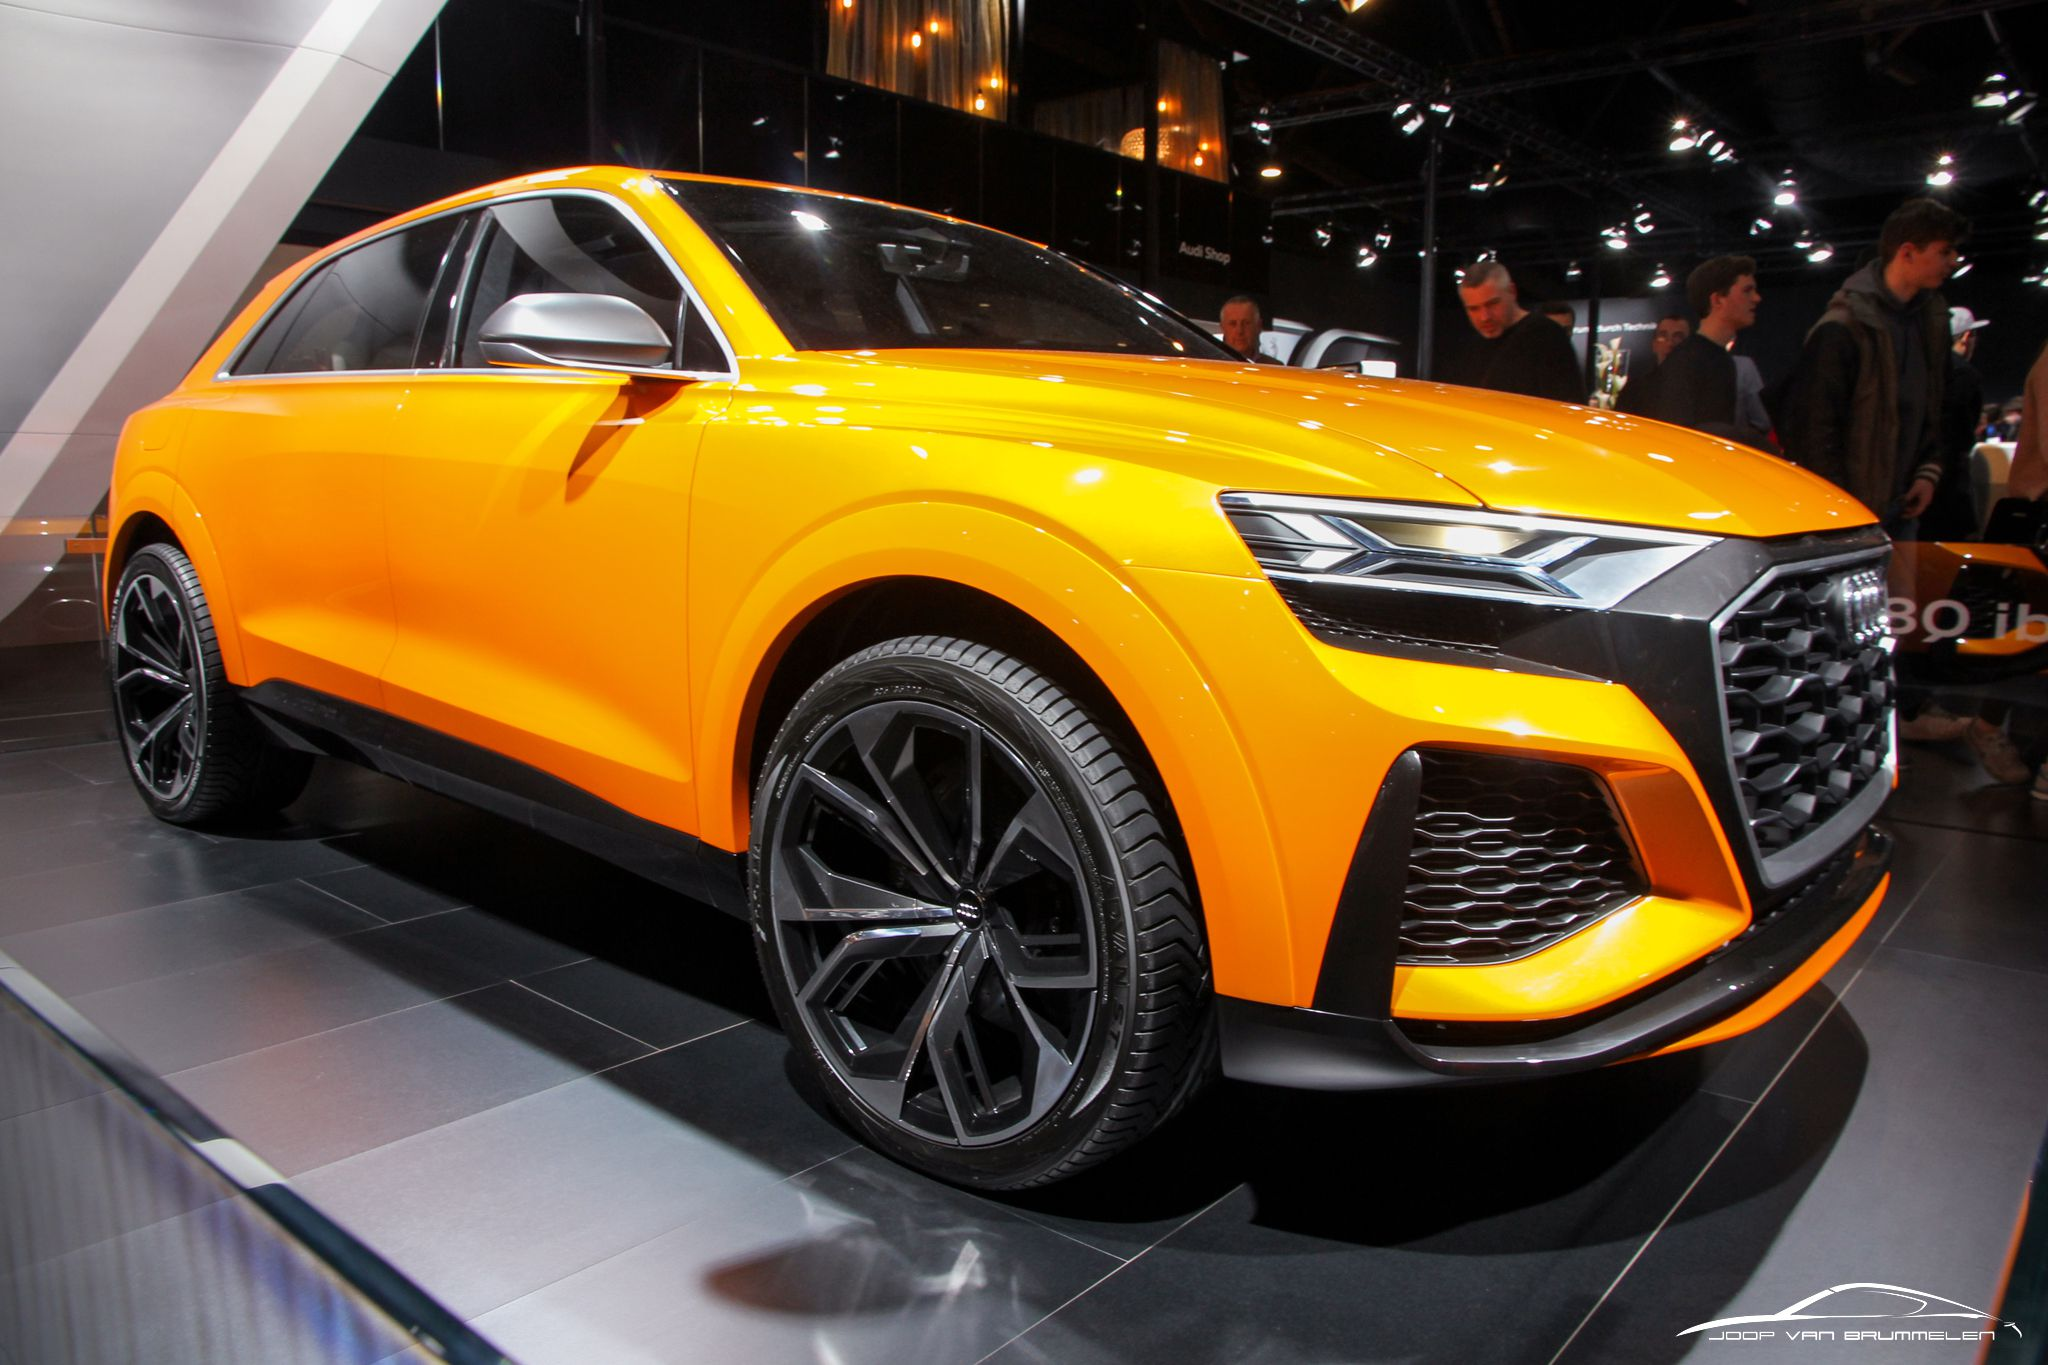 Wallpaper Of Cars And Bikes Hd 14 Images About Audi Q8 2019 In Hd On Wallpapersqq